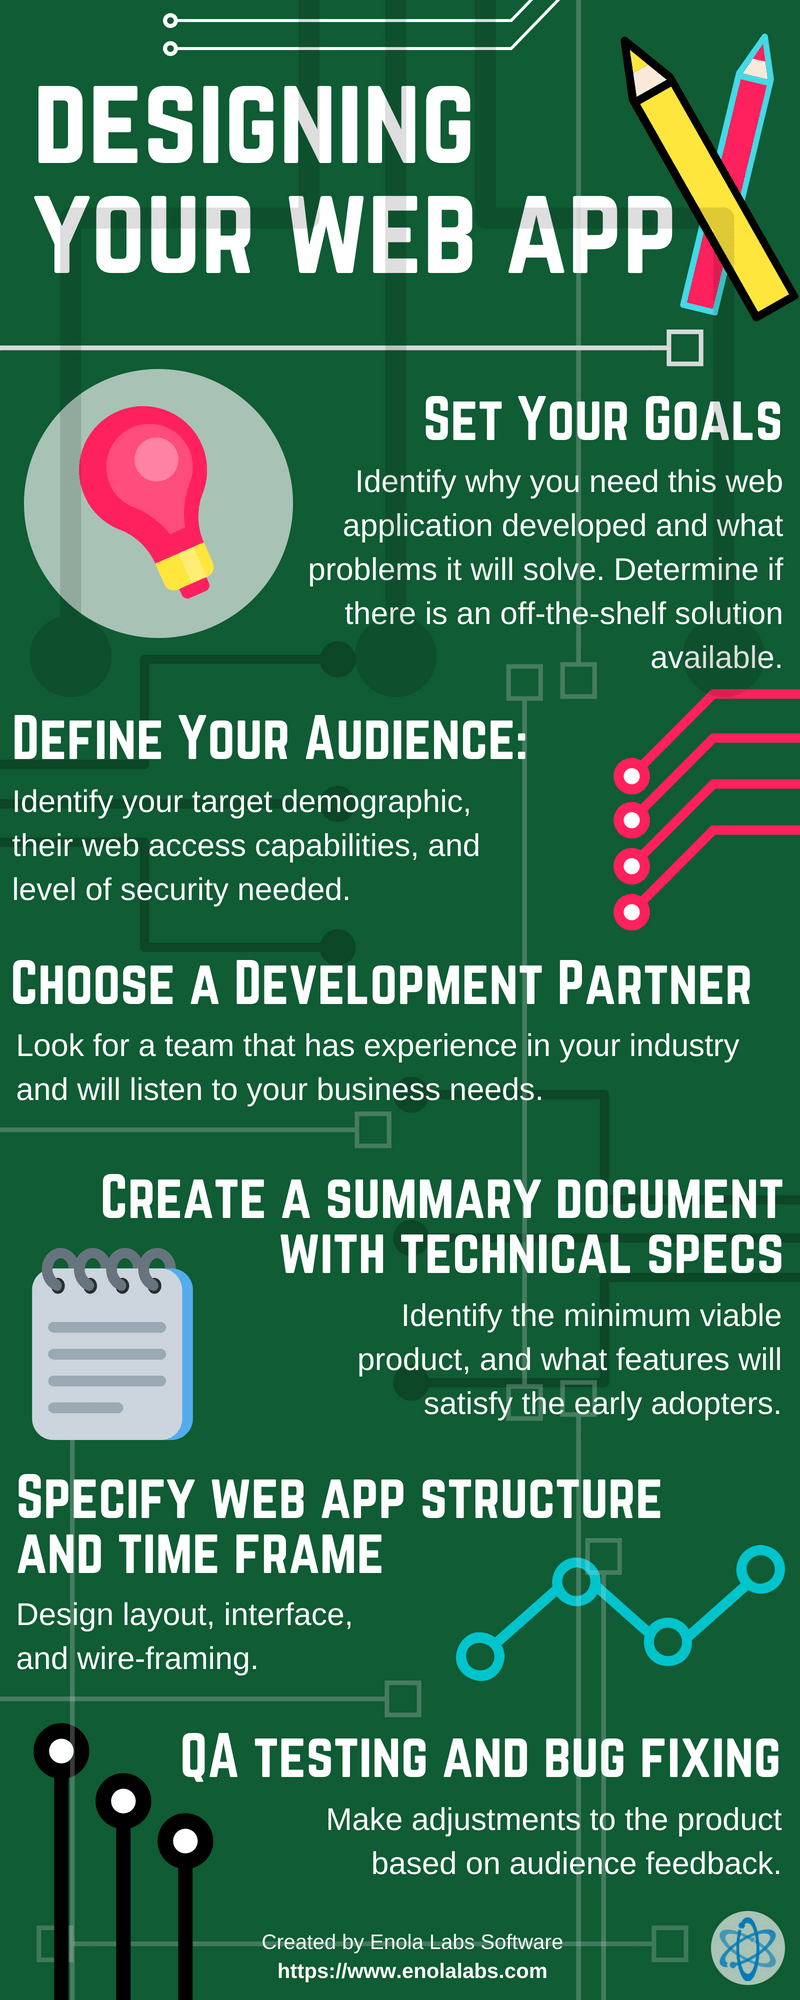 6 Steps to Web Application Development Infographic